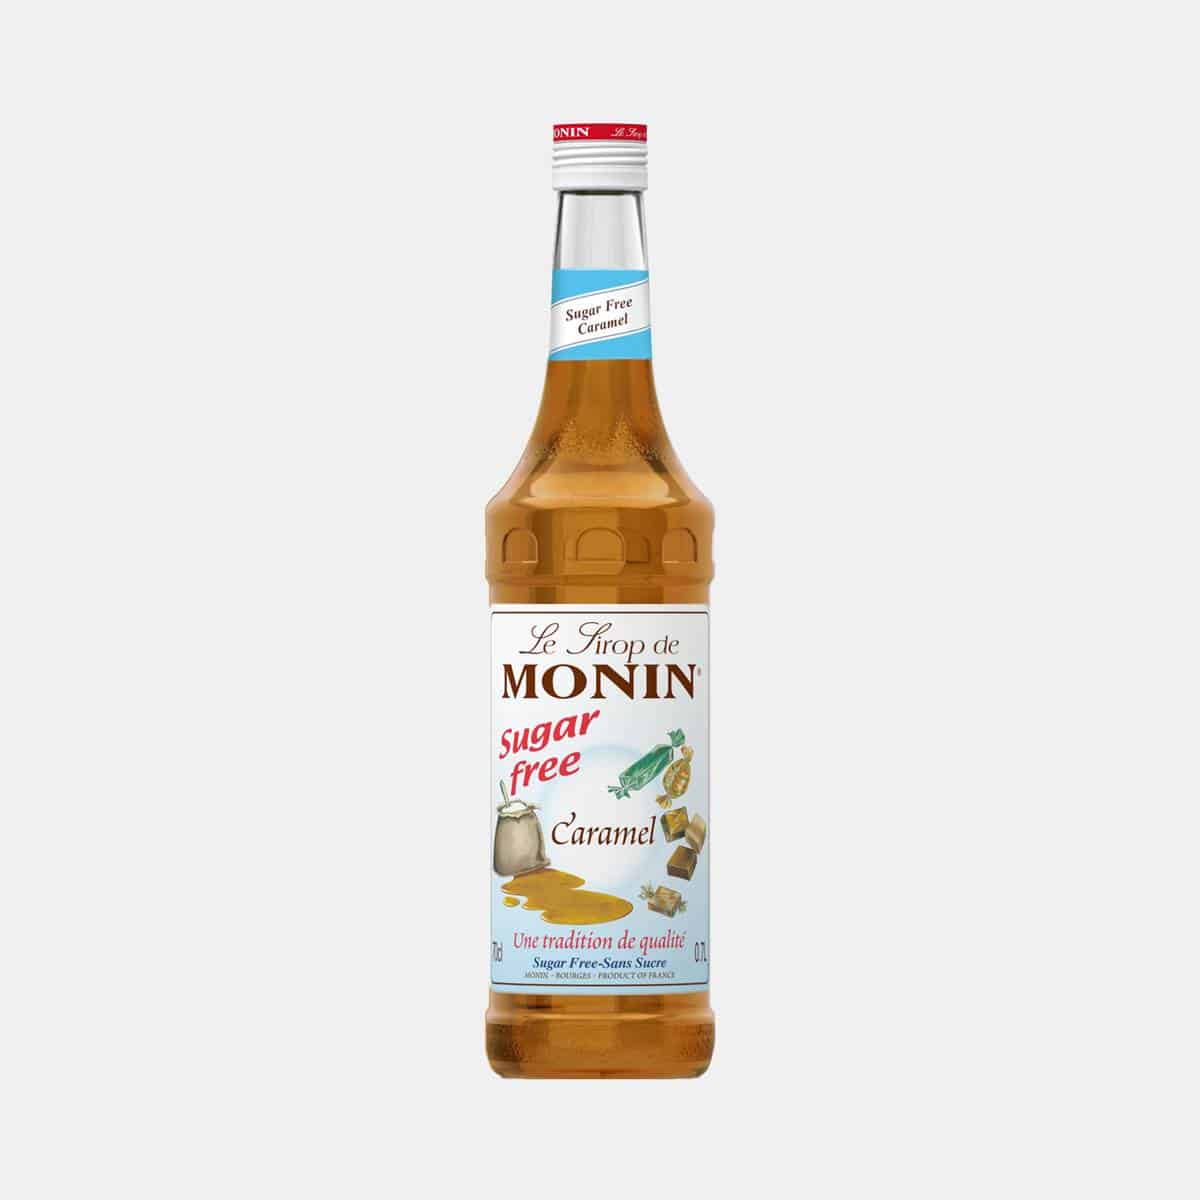 Monin Sugar Free Caramel Syrup 700ml Glass Bottle